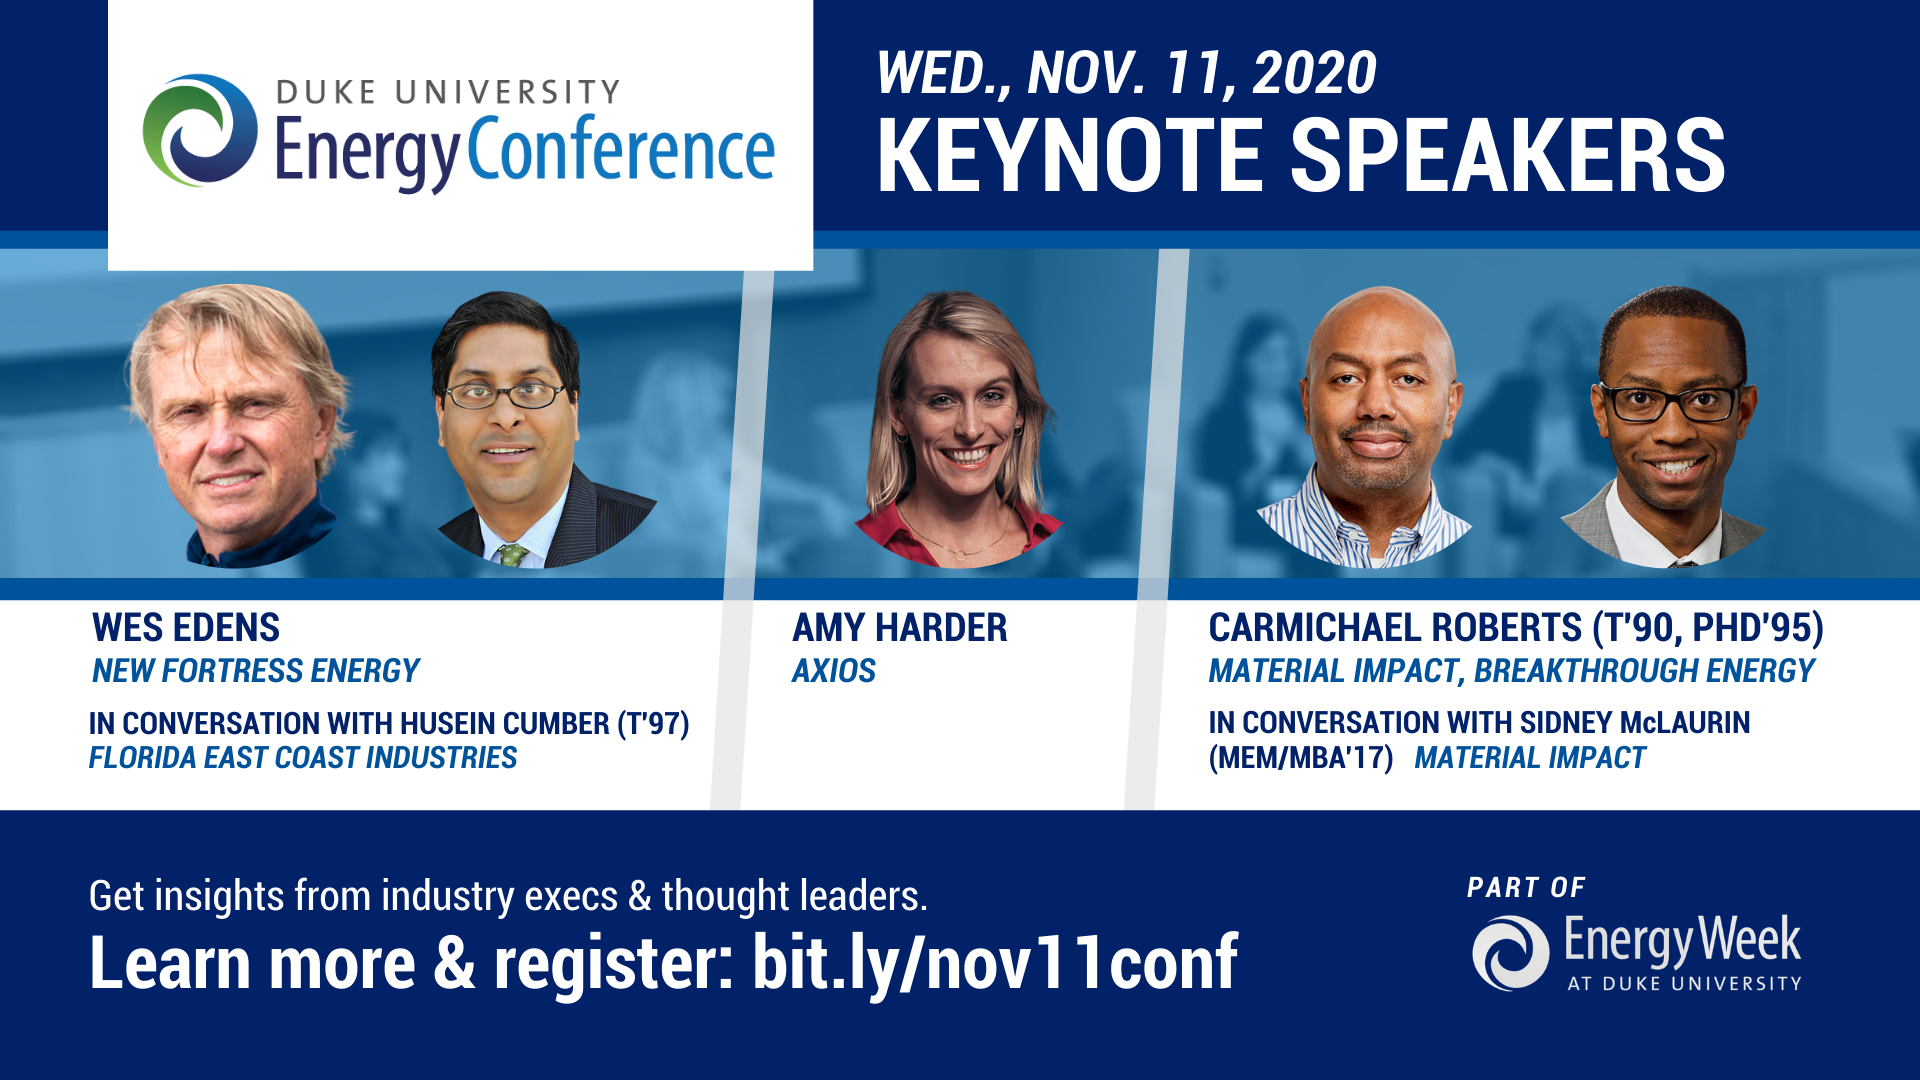 Keynote speakers of the 2020 Duke University Energy Conference include: Amy Harder, Wes Edens, and Carmichael Roberts.